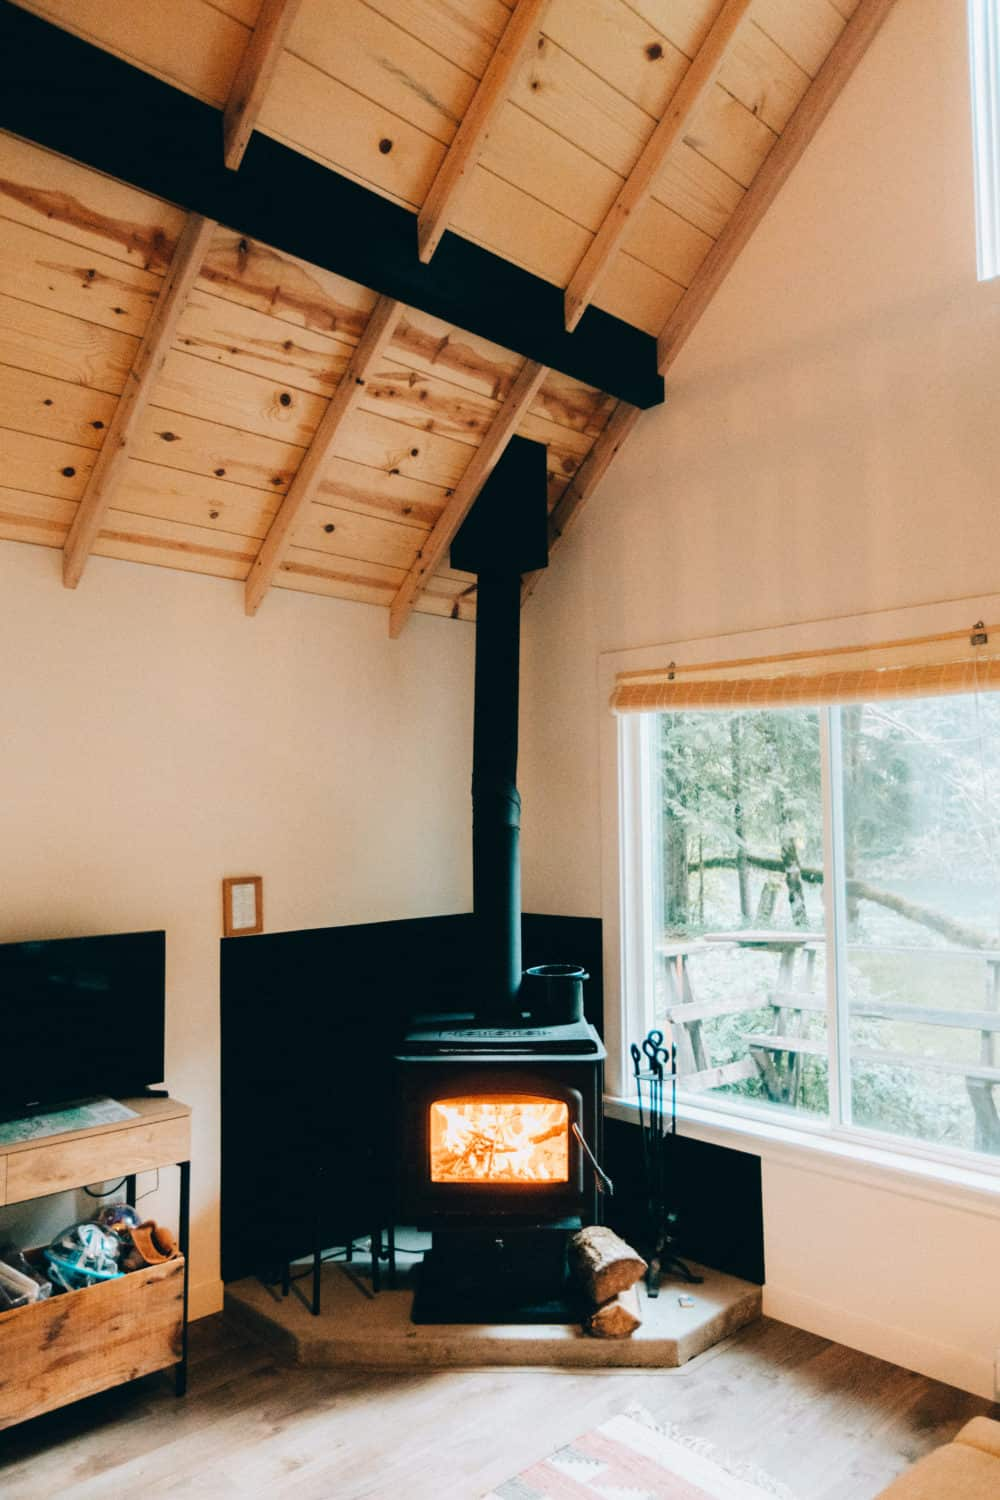 South Fork Cabin Interior - Wood burning stove